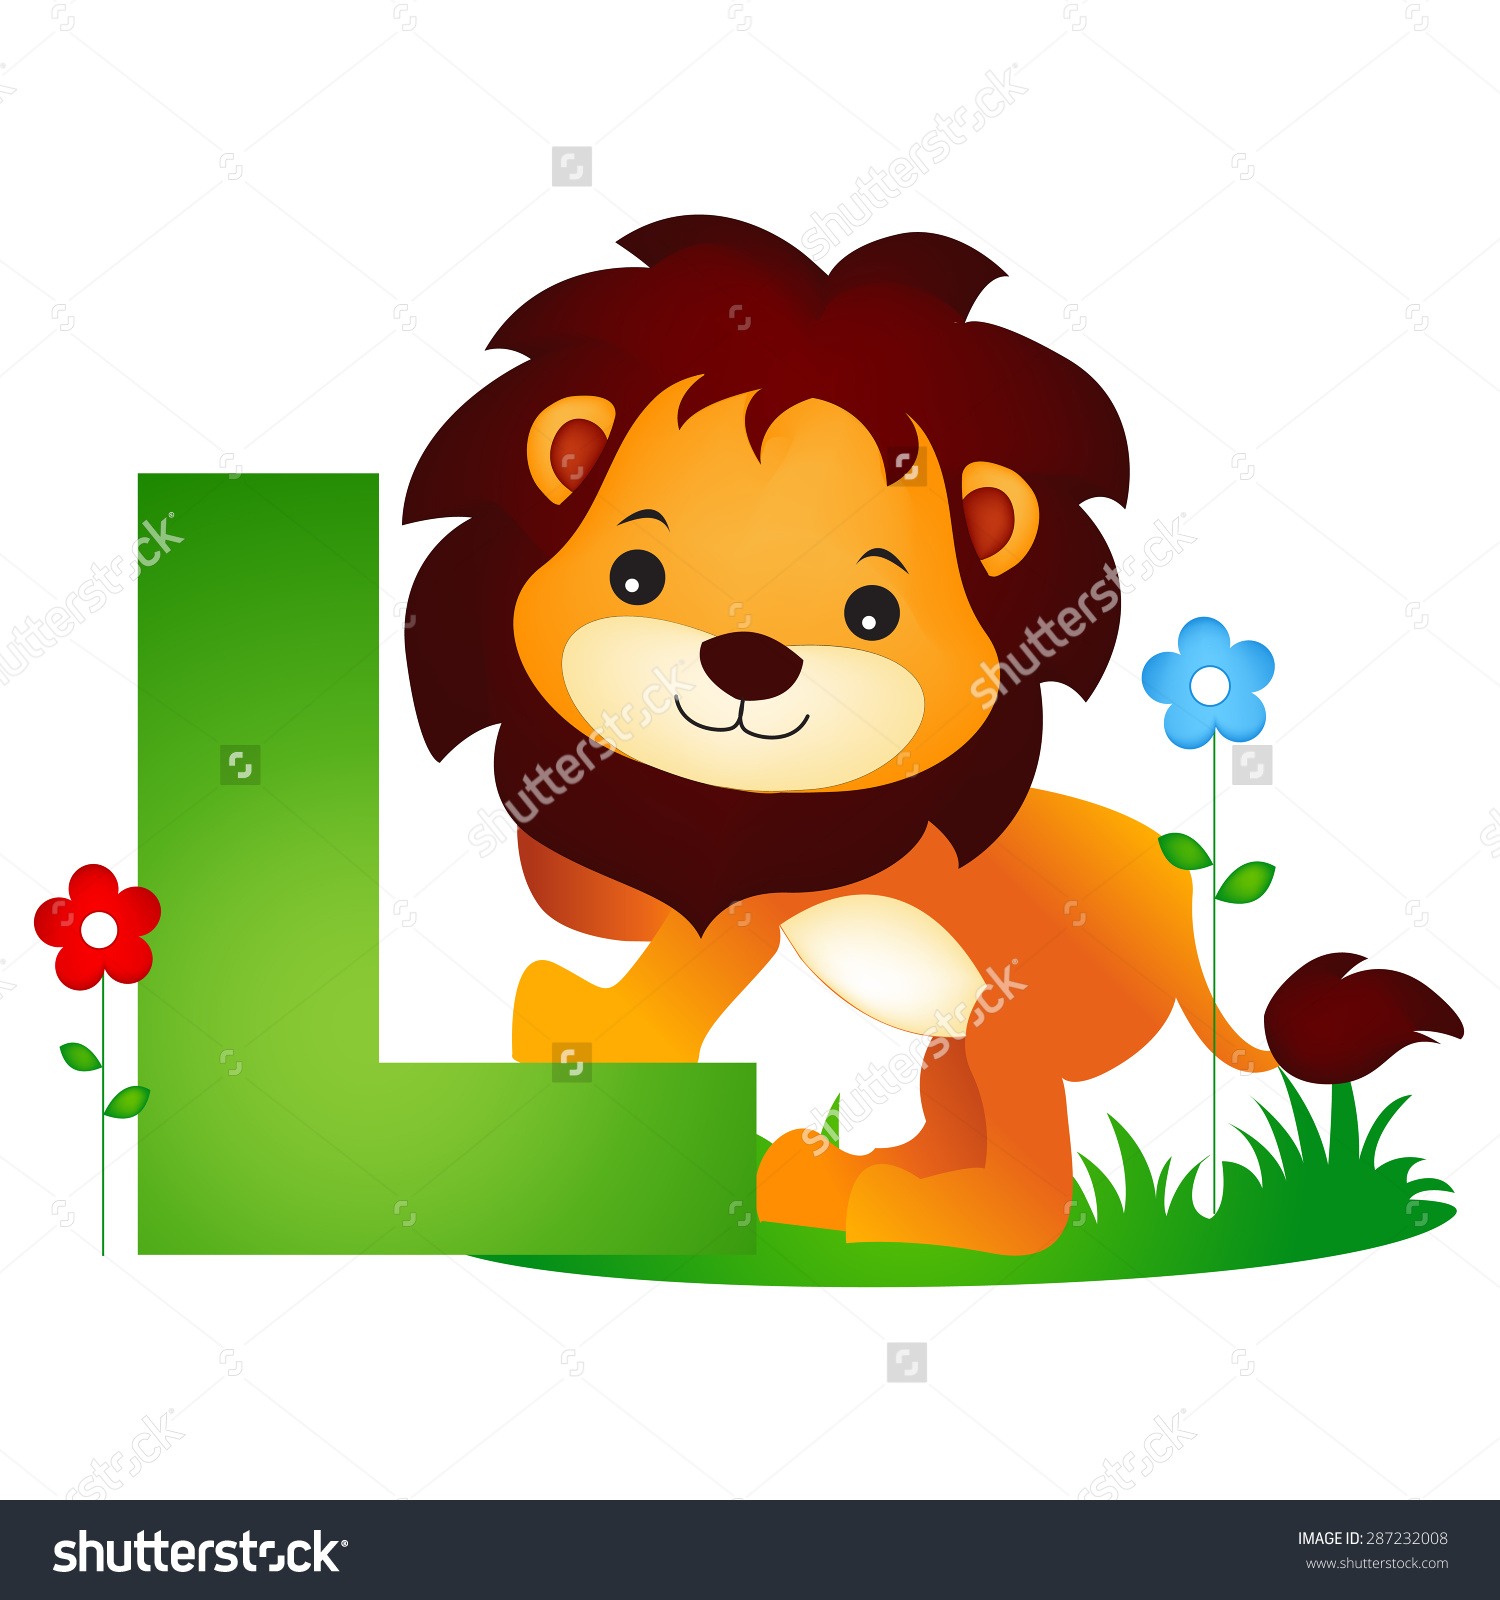 Animal clipart alphabet letters jpg freeuse library Colorful Animal Alphabet Letter L Cute Stock Vector 287232008 ... jpg freeuse library